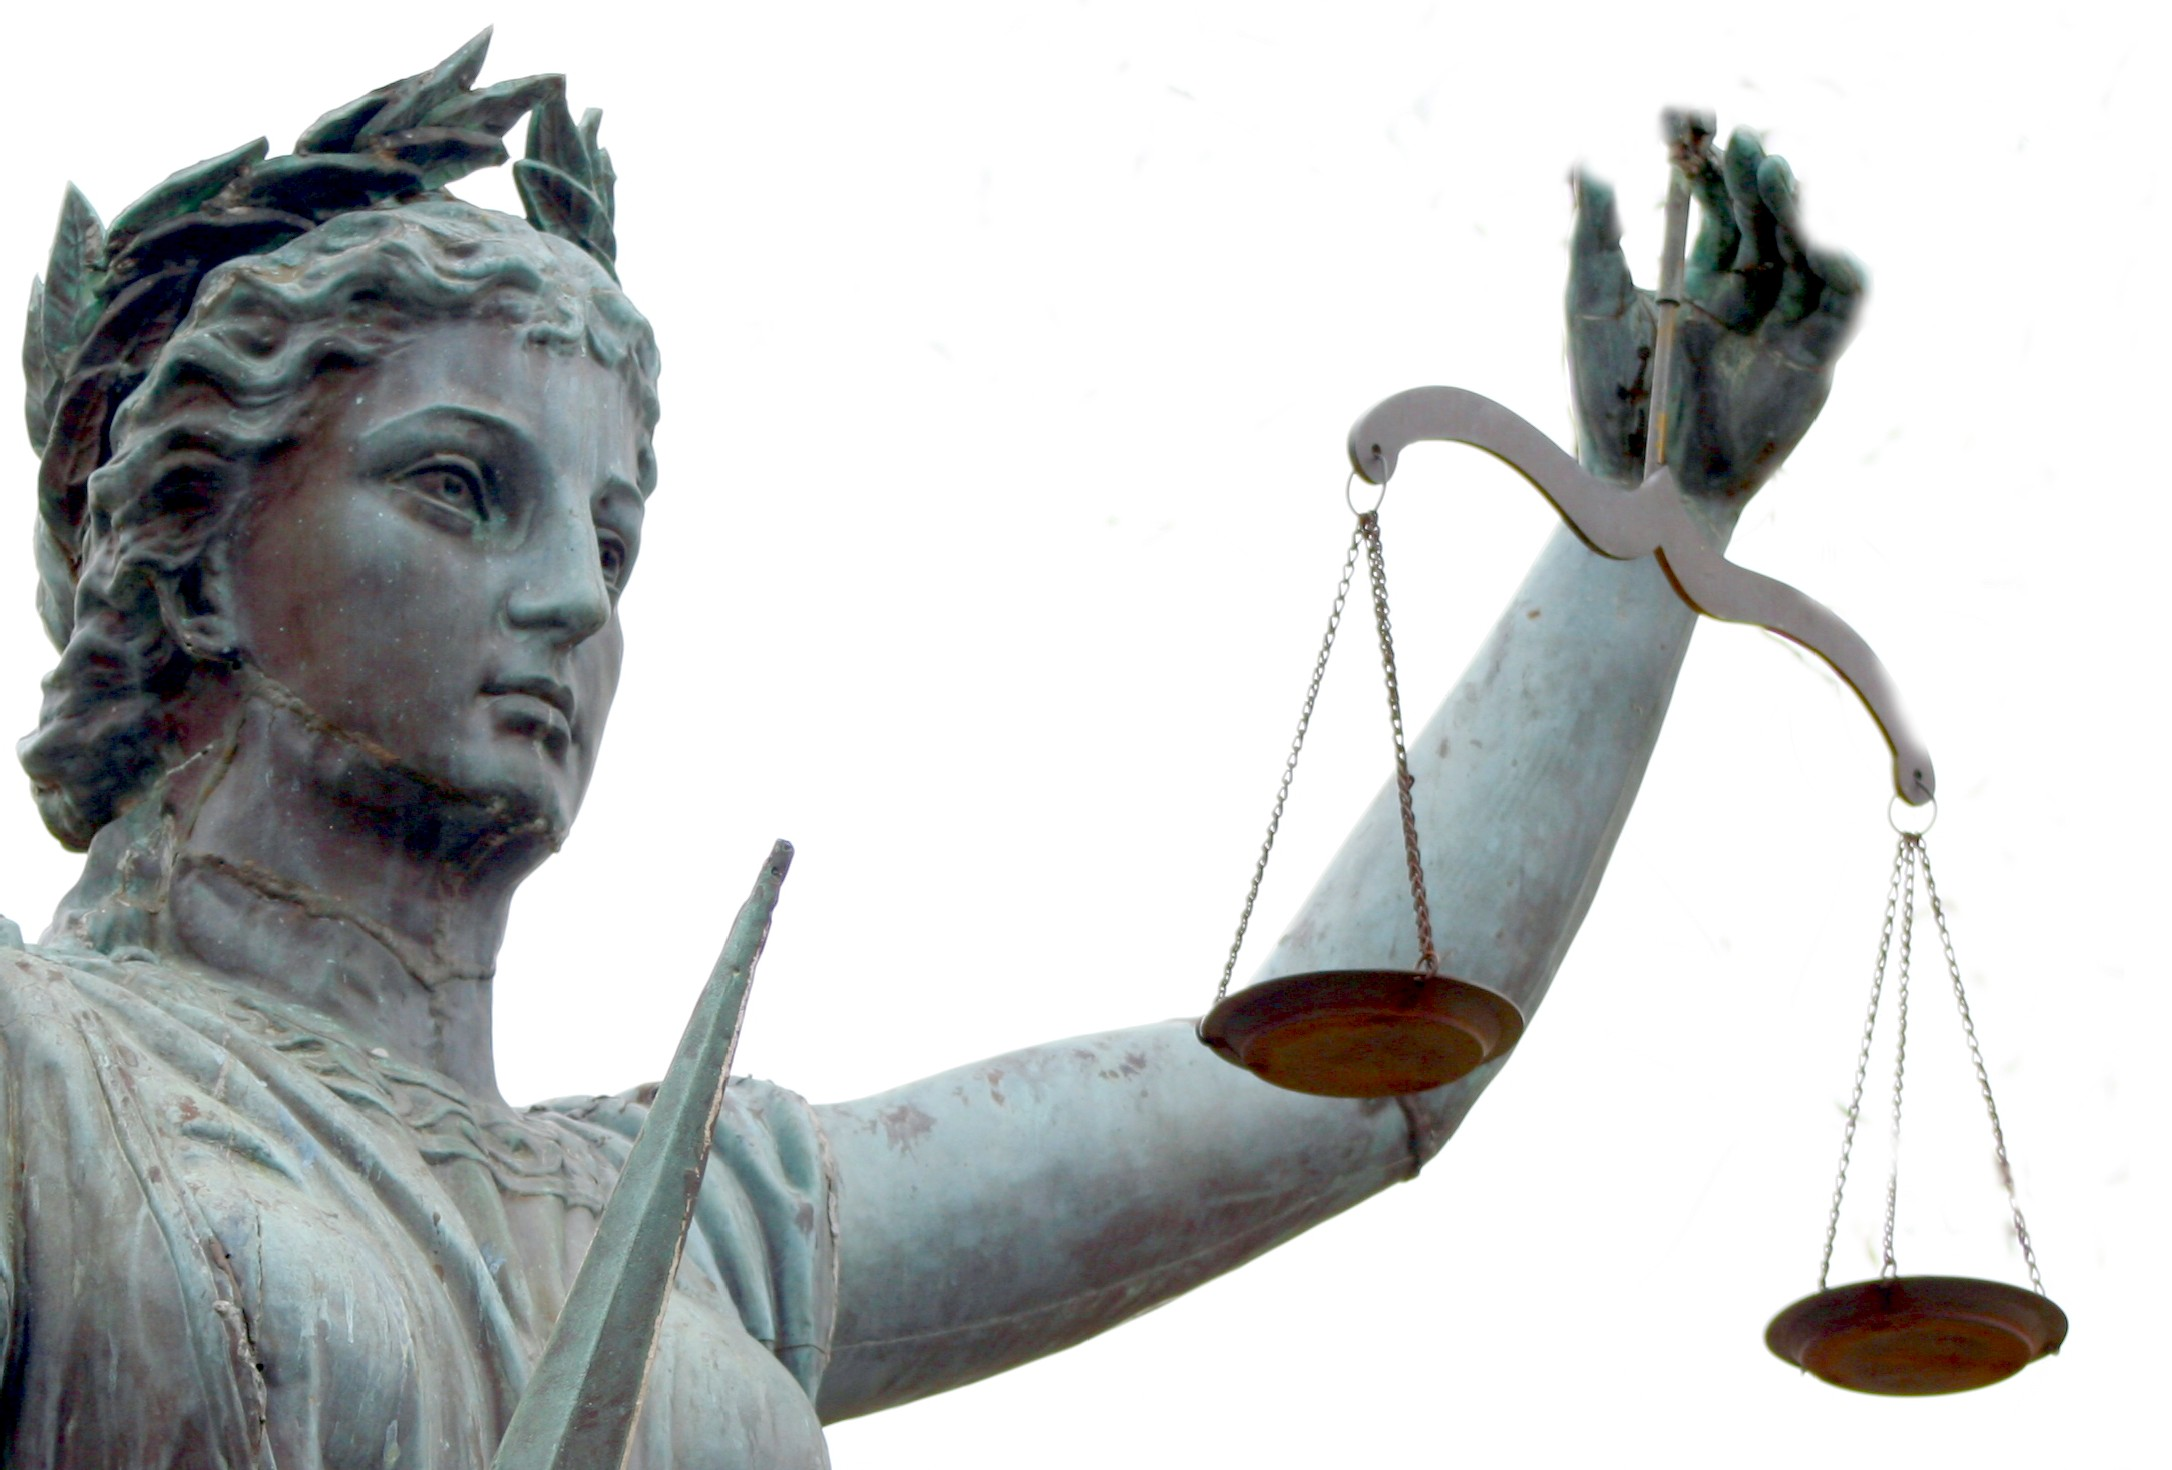 the contributing factors of crime in understanding mythology of crime and criminal justice Principles of good policing: avoiding violence between police and citizens criminal justice researchers, local community leaders, and rank-and-file police officers in extensive citizens, and crime suspects alike that, essentially.